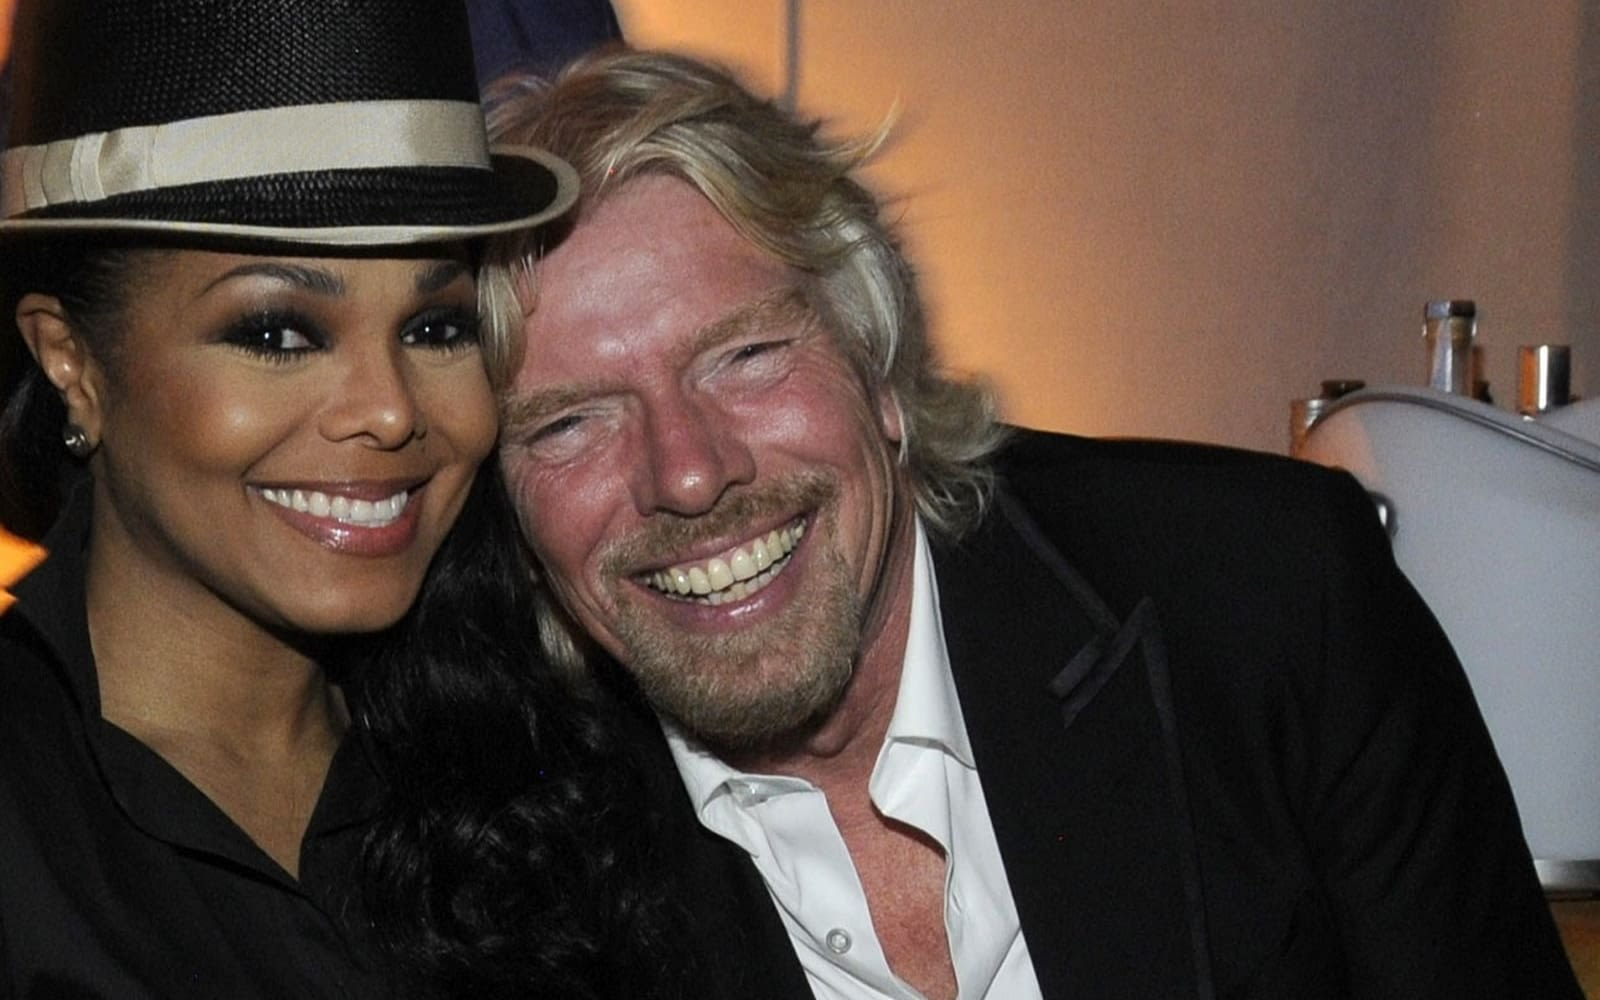 Richard Branson and Janet Jackson, both smiling at the camera